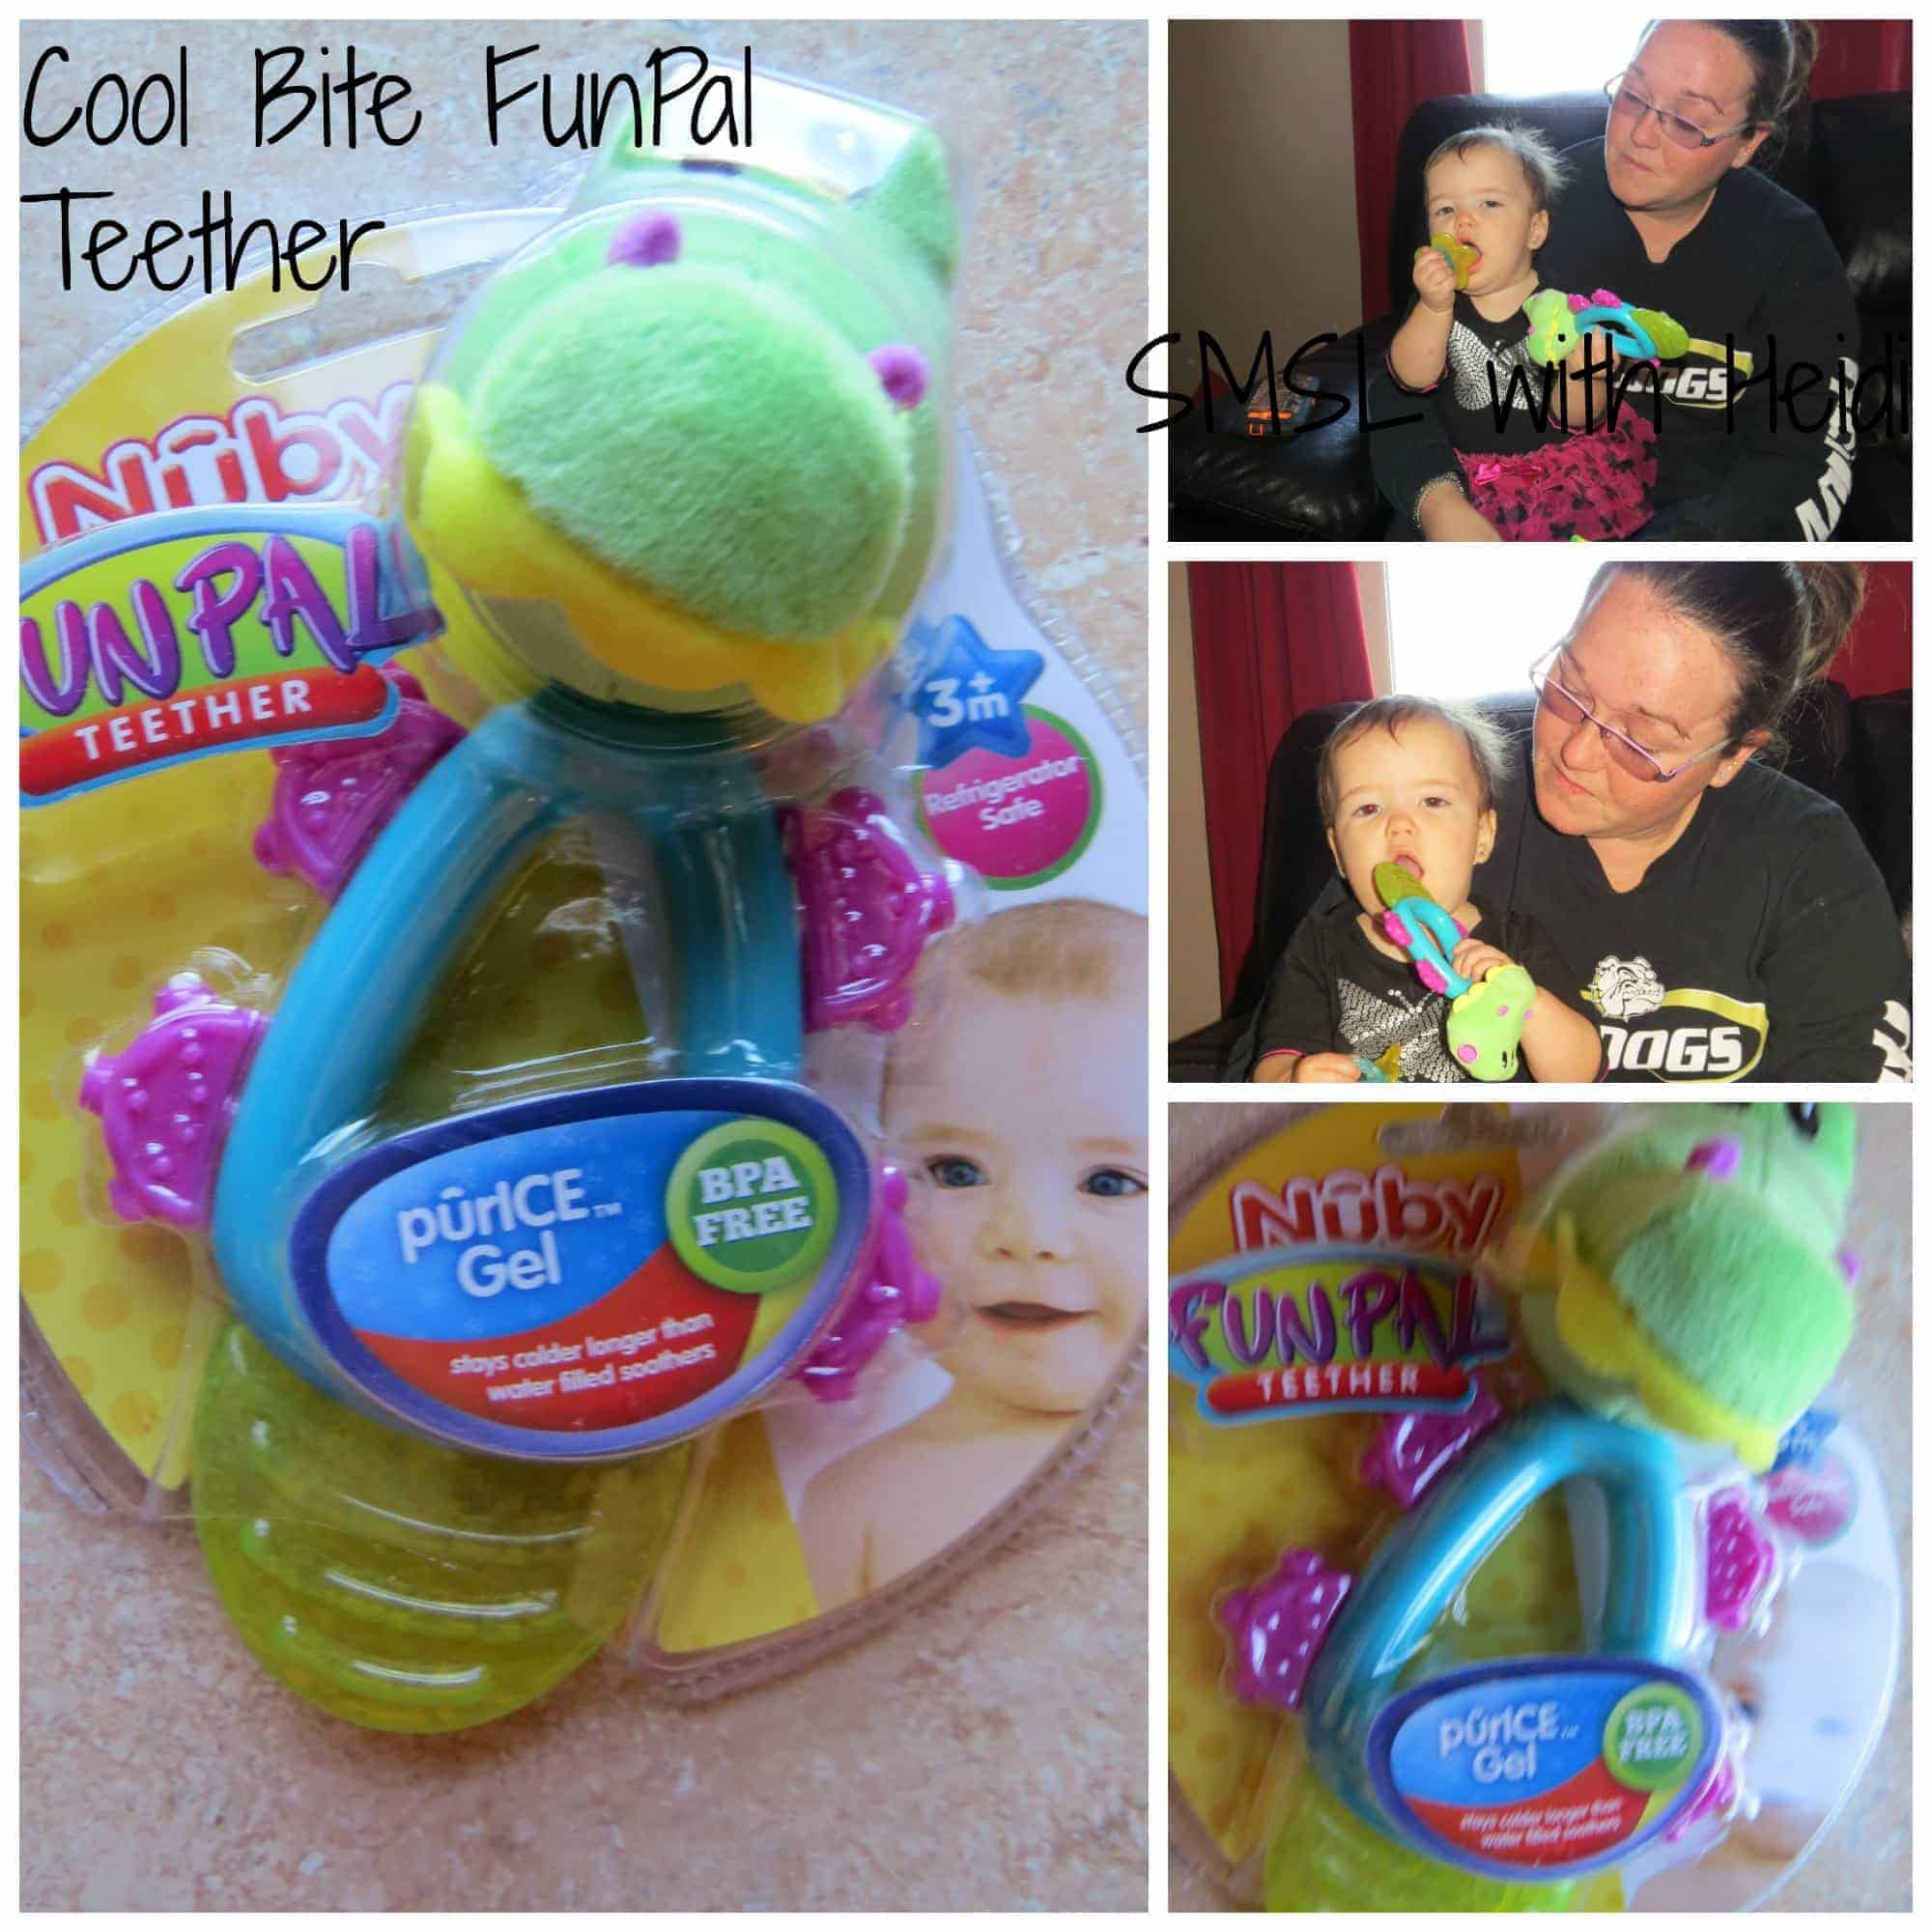 Coolbite FunPal Teether from Nuby